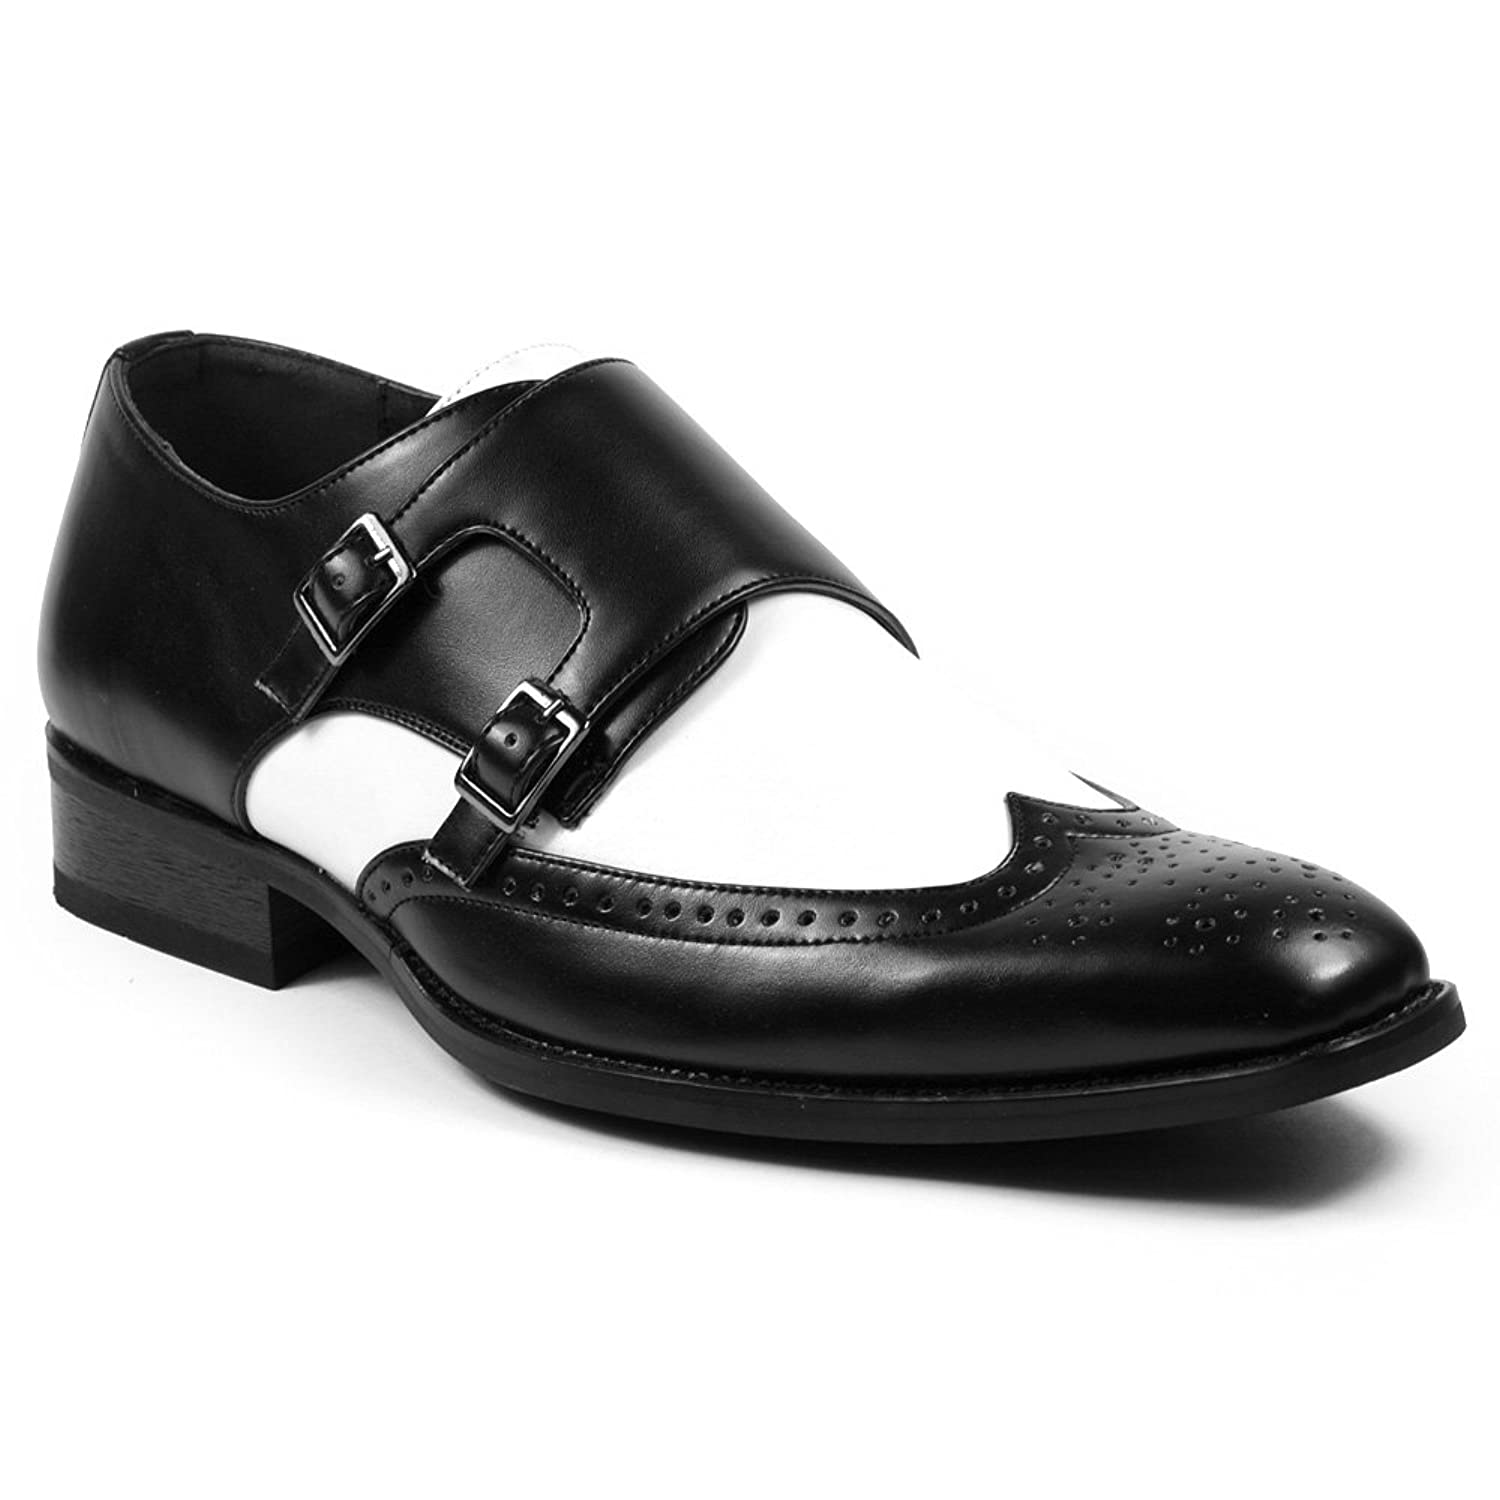 UV Signature PA003 Men's Perforated Wing Tip Double Monk Strap Dress Shoes